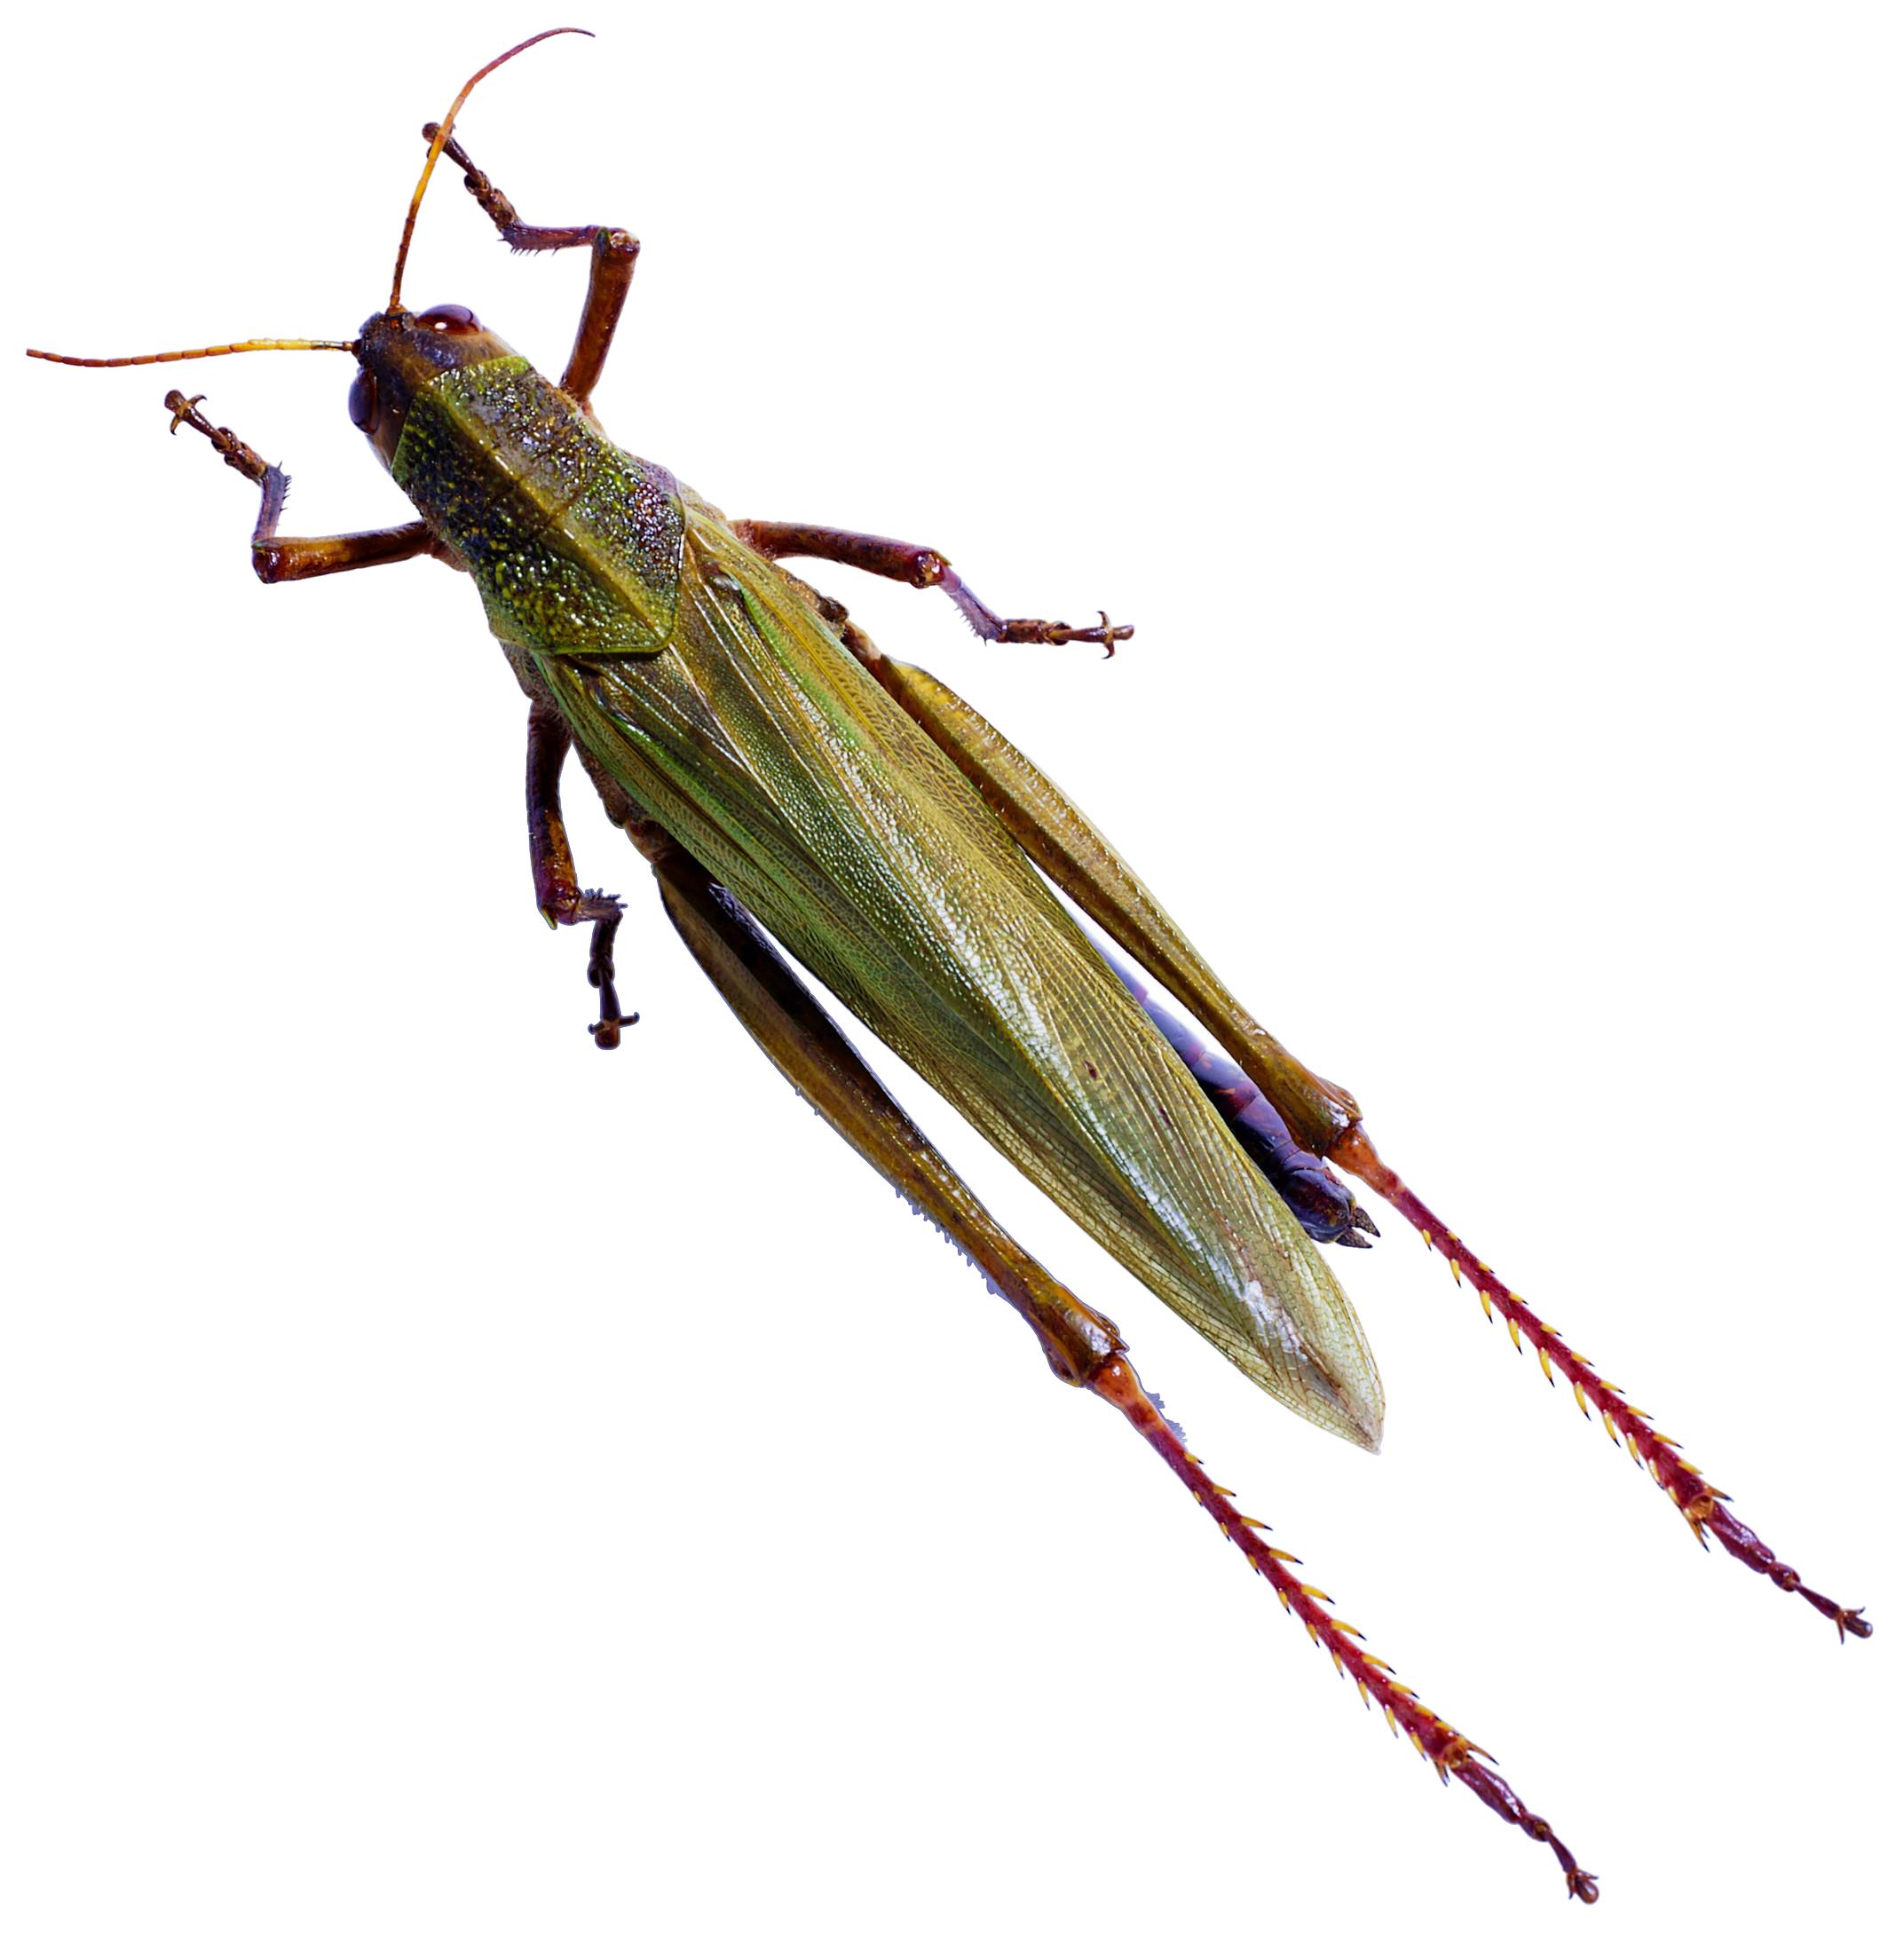 Transparent bugs locust. Insect caelifera butterfly reptile